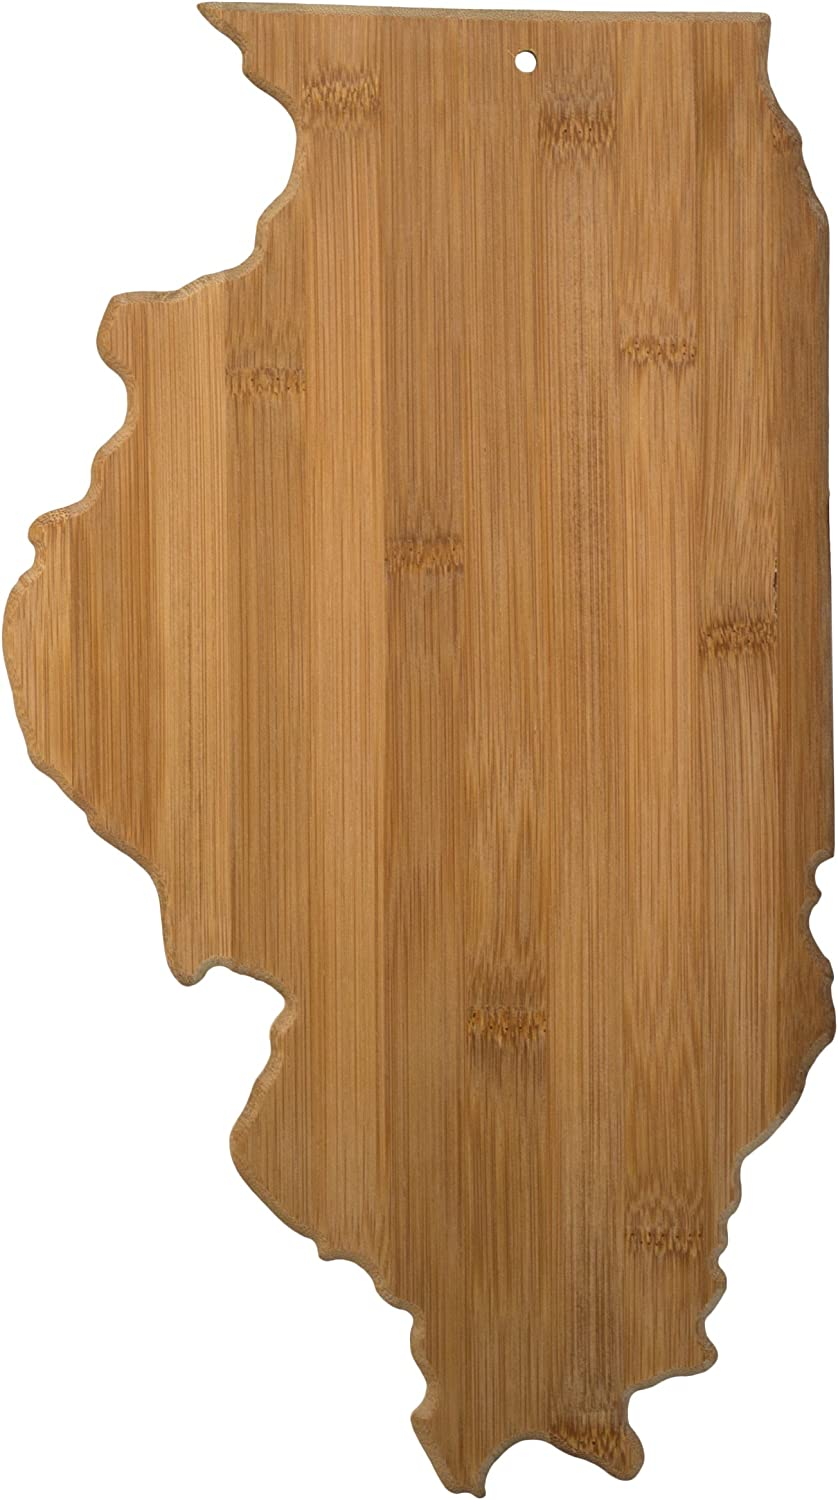 Totally Bamboo Illinois State Shaped Bamboo Serving and Cutting Board